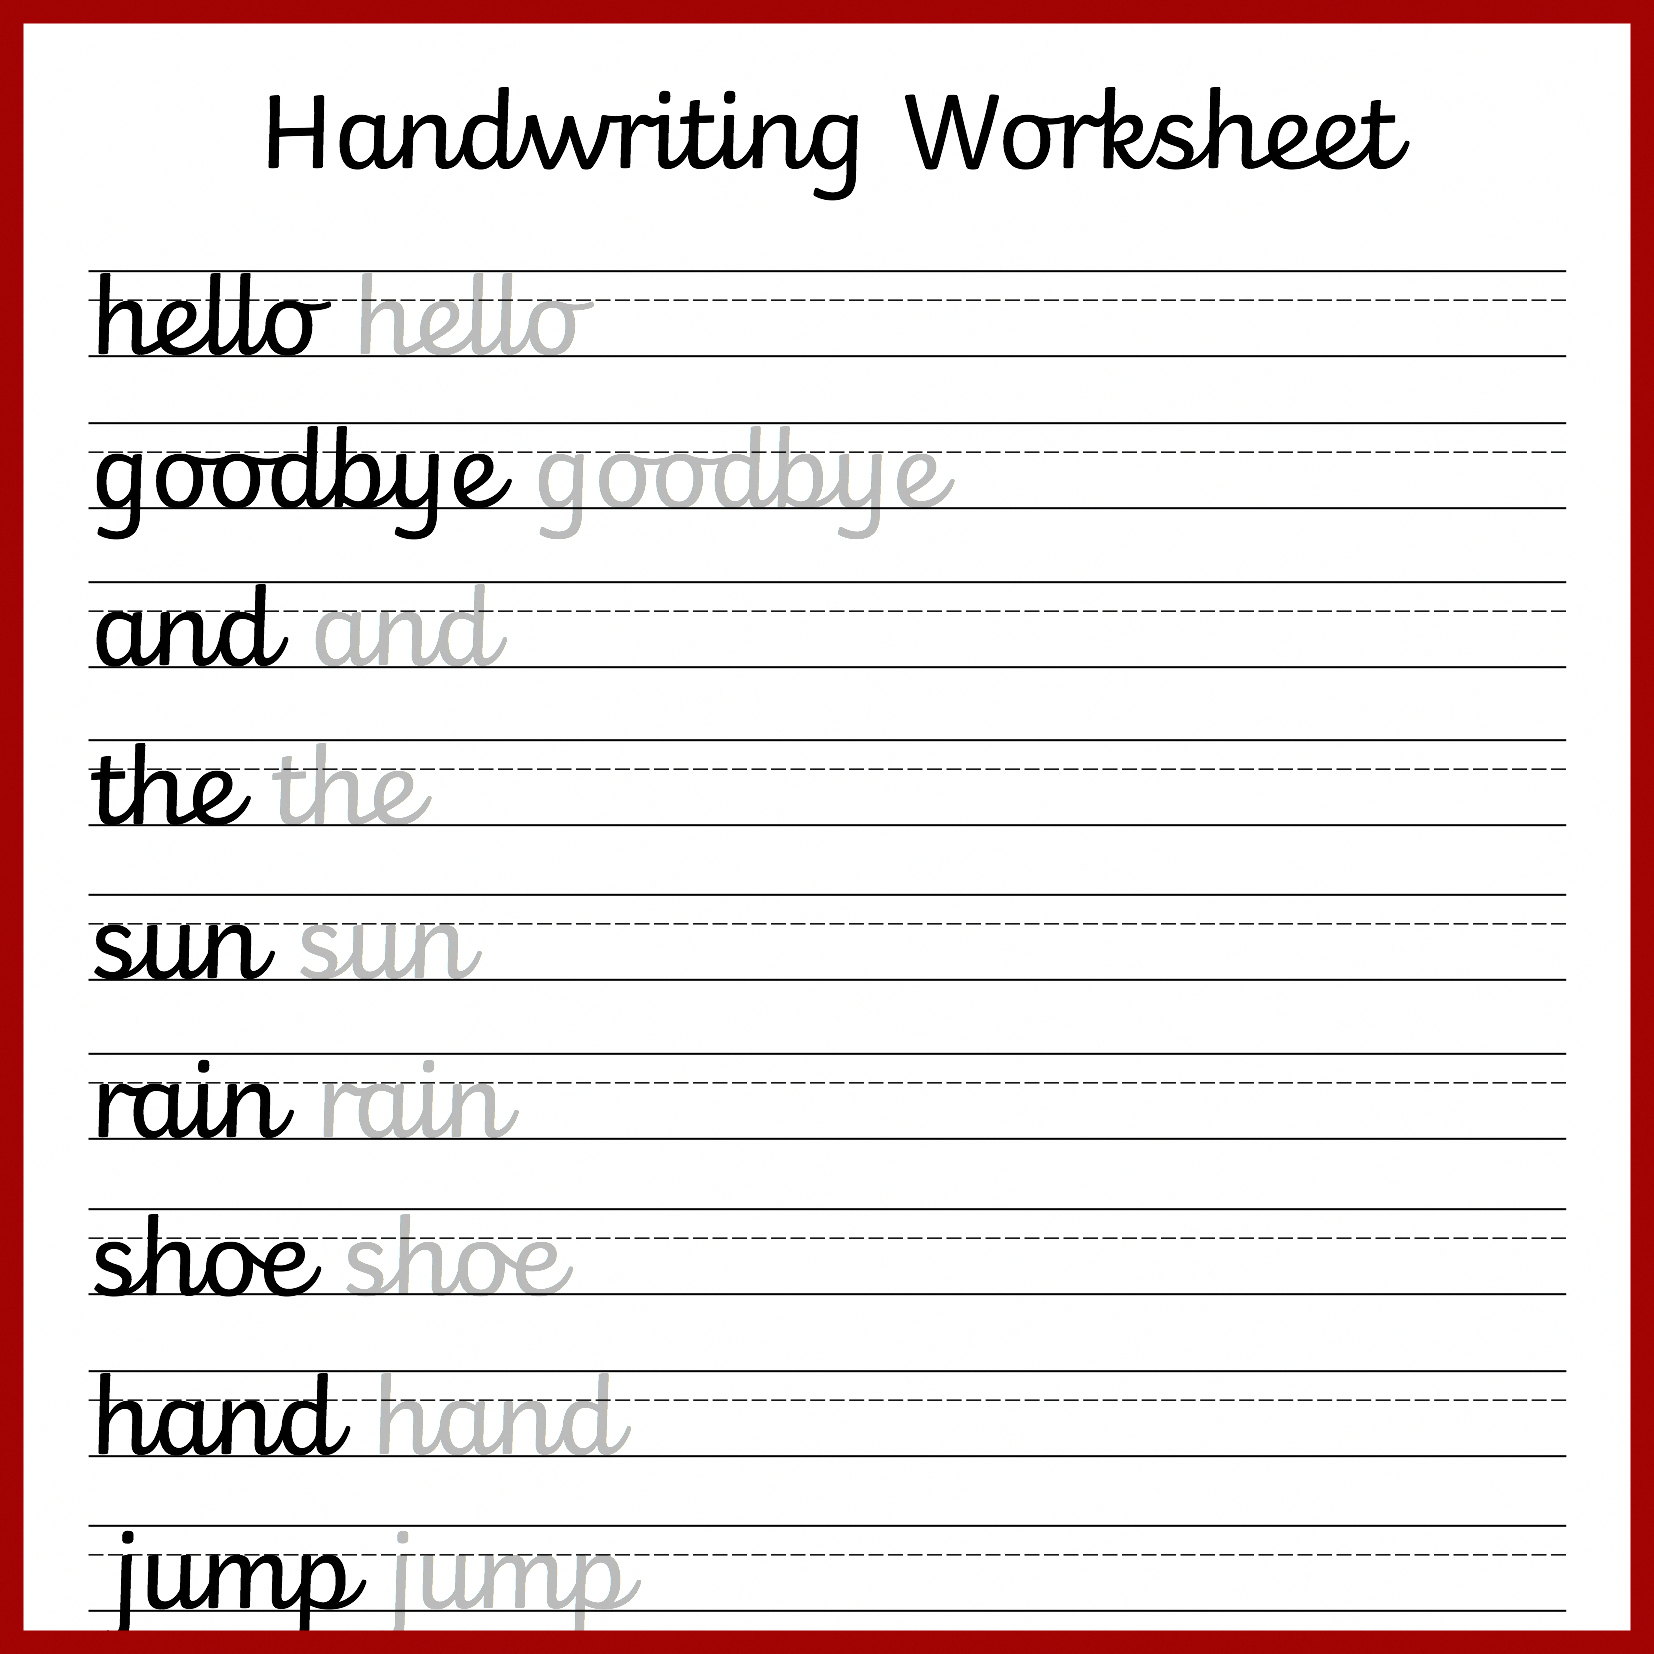 In A Follow Up To My Recent Post Sharing Some Non-Cursive - Free Printable Cursive Handwriting Worksheets